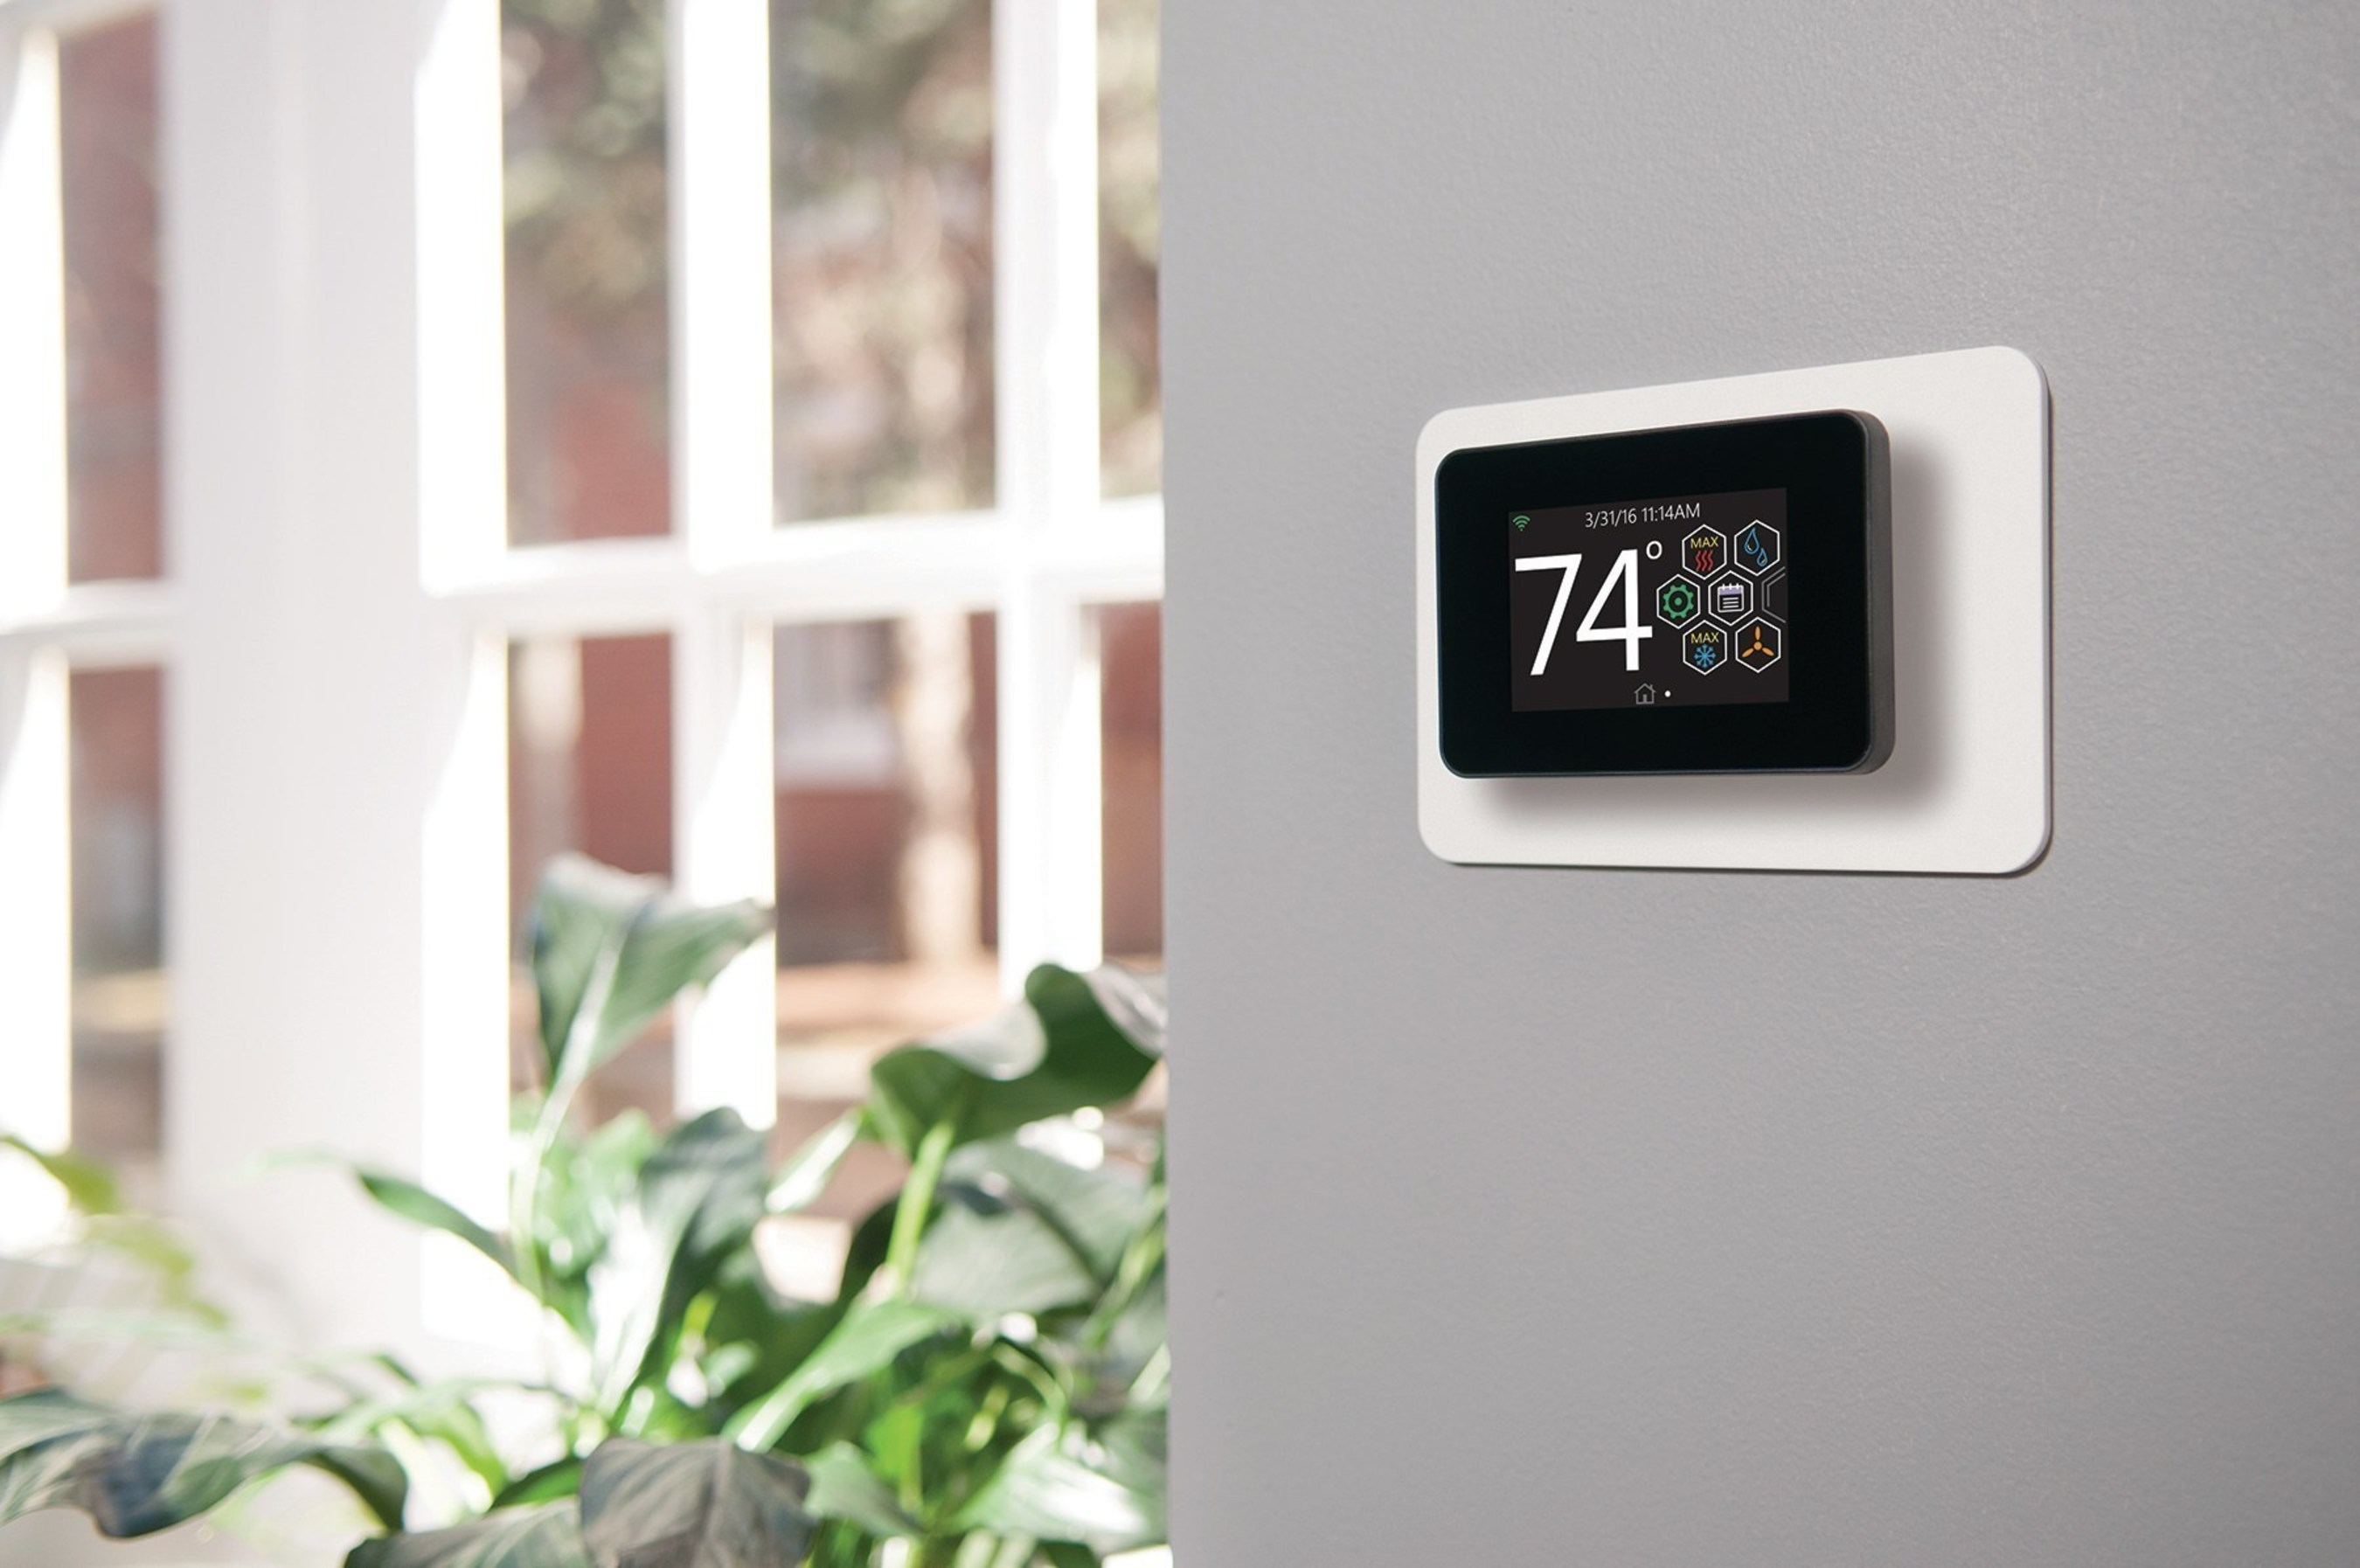 New Johnson Controls YORK(R) touch-screen thermostat seamlessly connects homeowners to their home comfort systems.